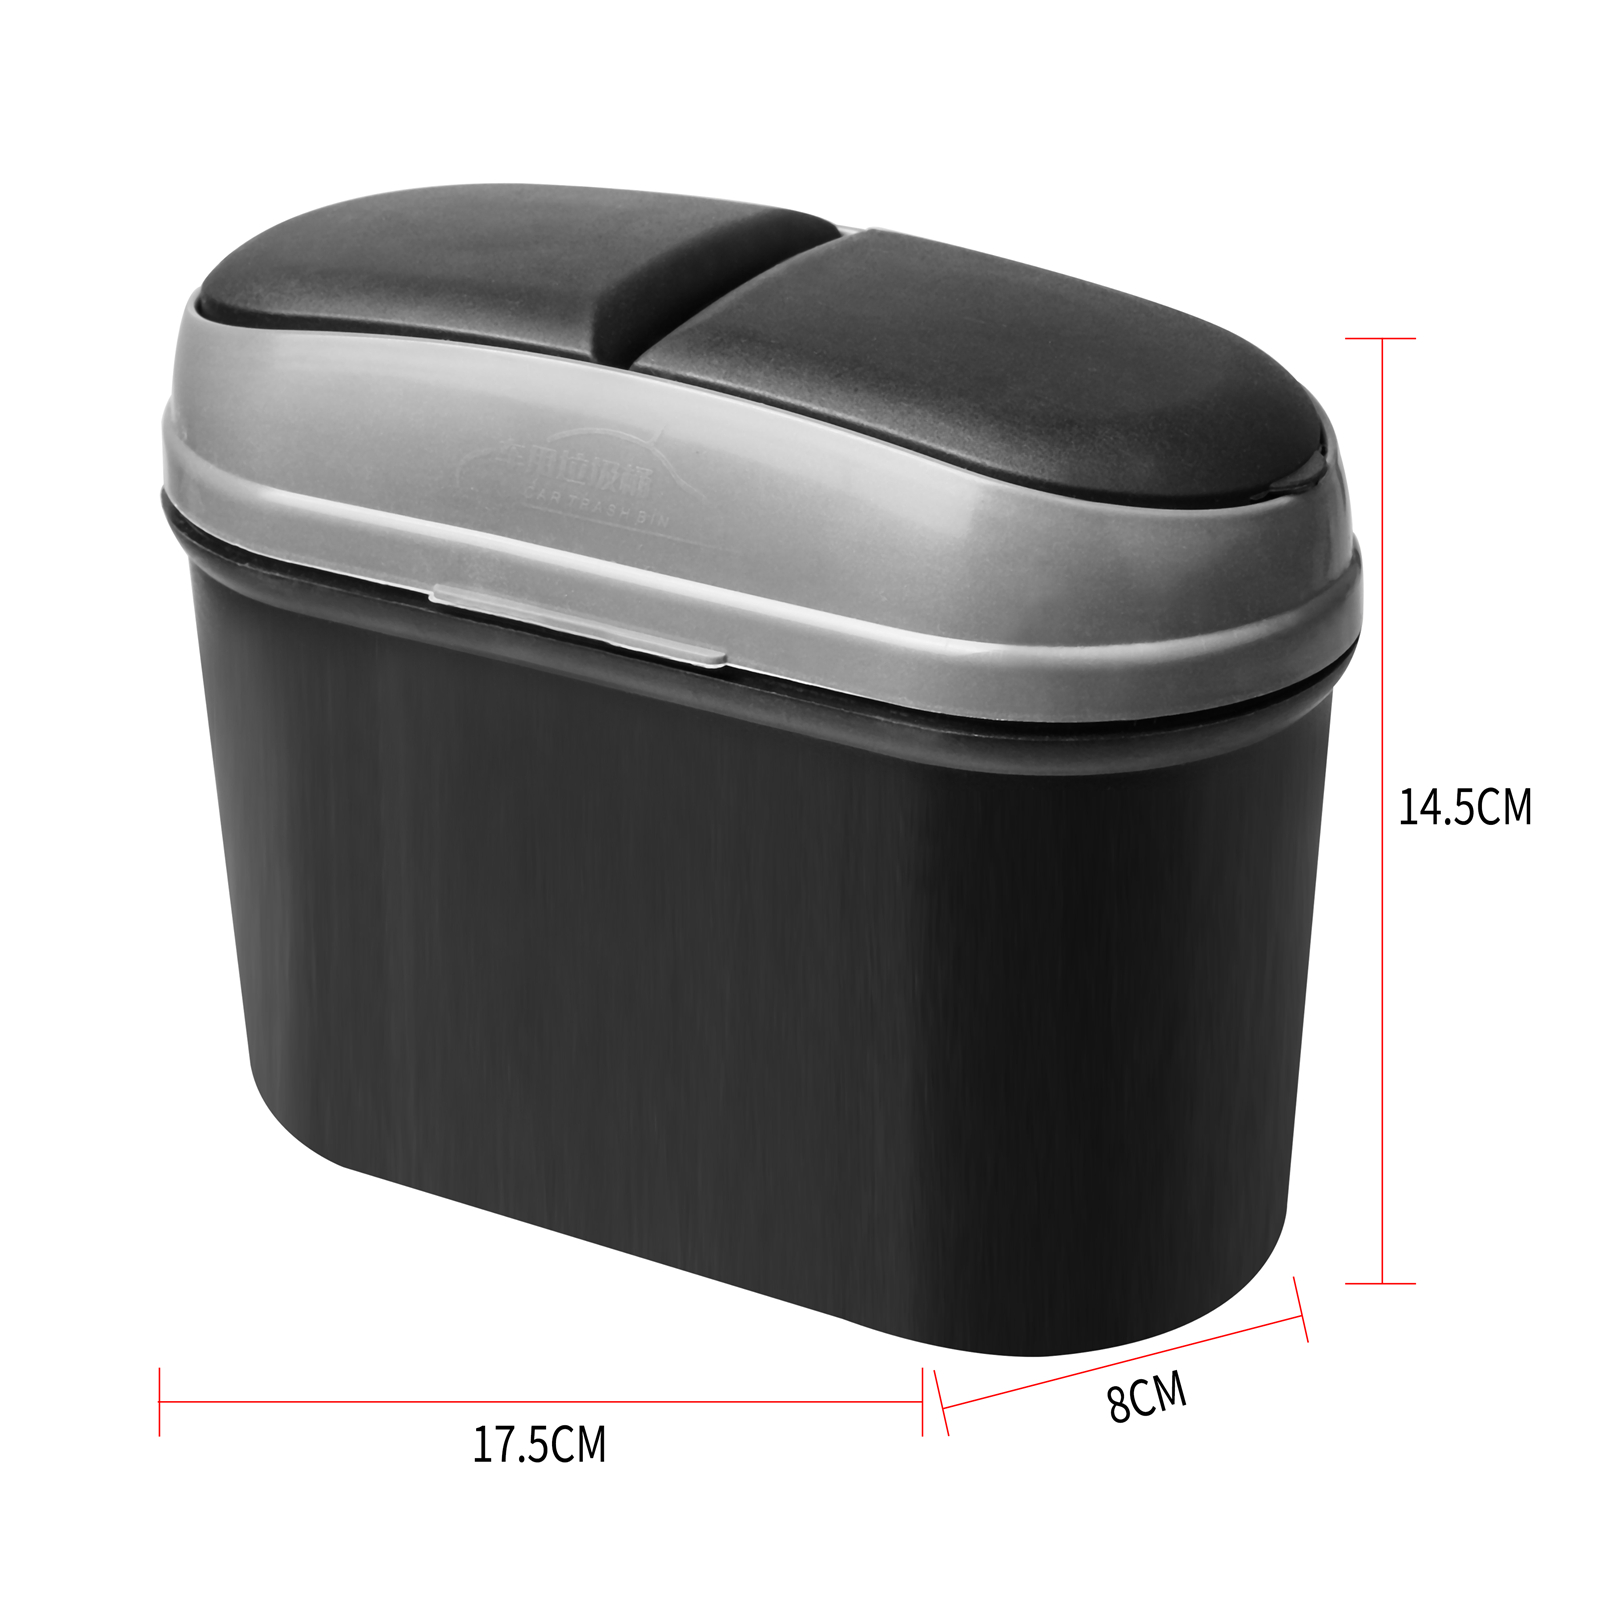 mr-cartool-car-trash-bin-auto-mini-cans-rubbish-can-garbage-dust-dustbin-box-case-holder-hook-plastic-bucket